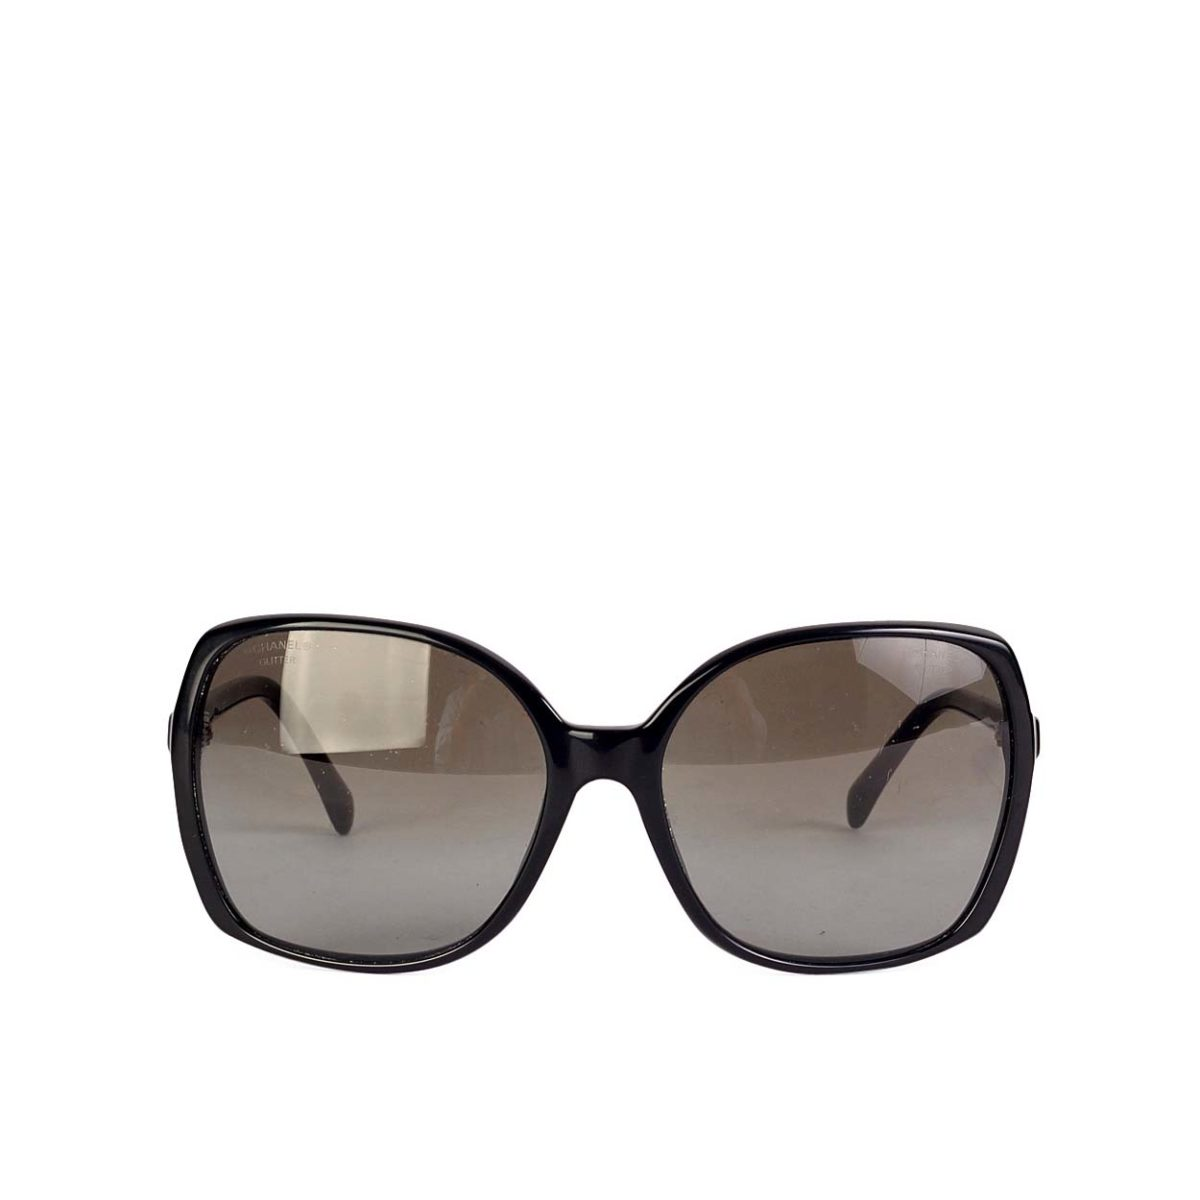 b2f4ad4a7ba CHANEL Square Signature CC Sunglasses black